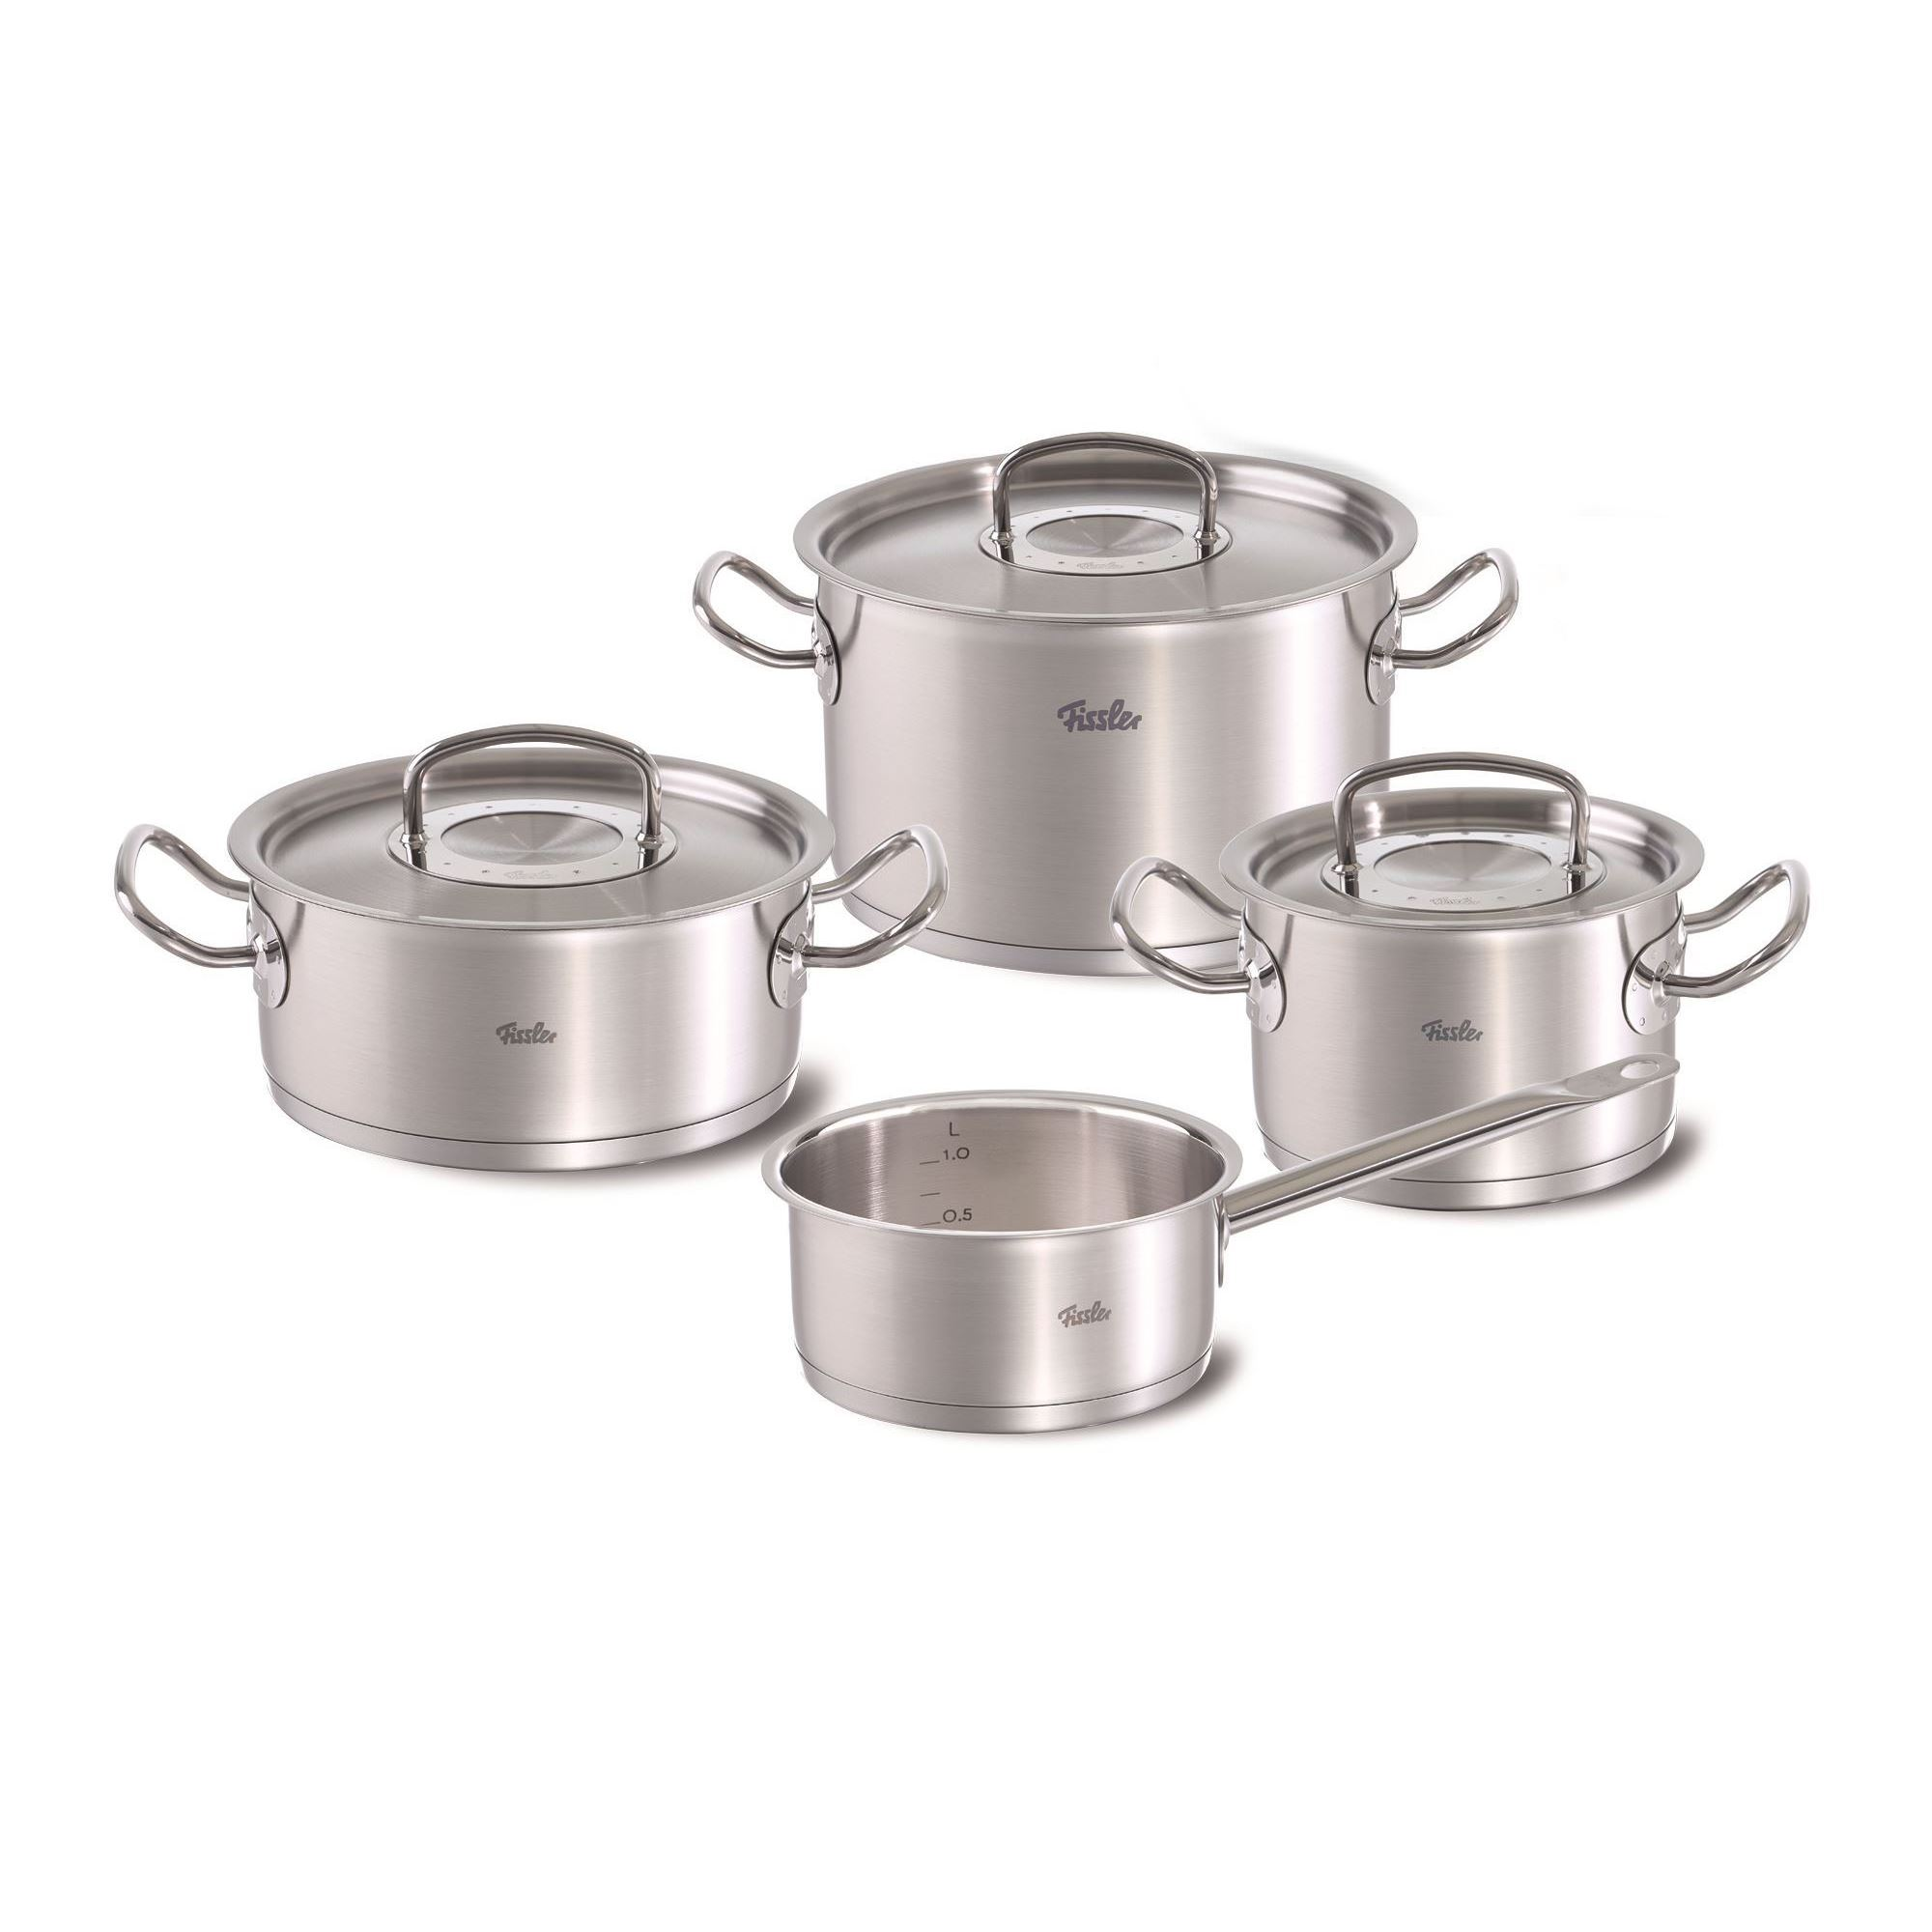 fissler profi collection topfset 1a neuware fissler original profi collection pot set 4 pieces. Black Bedroom Furniture Sets. Home Design Ideas